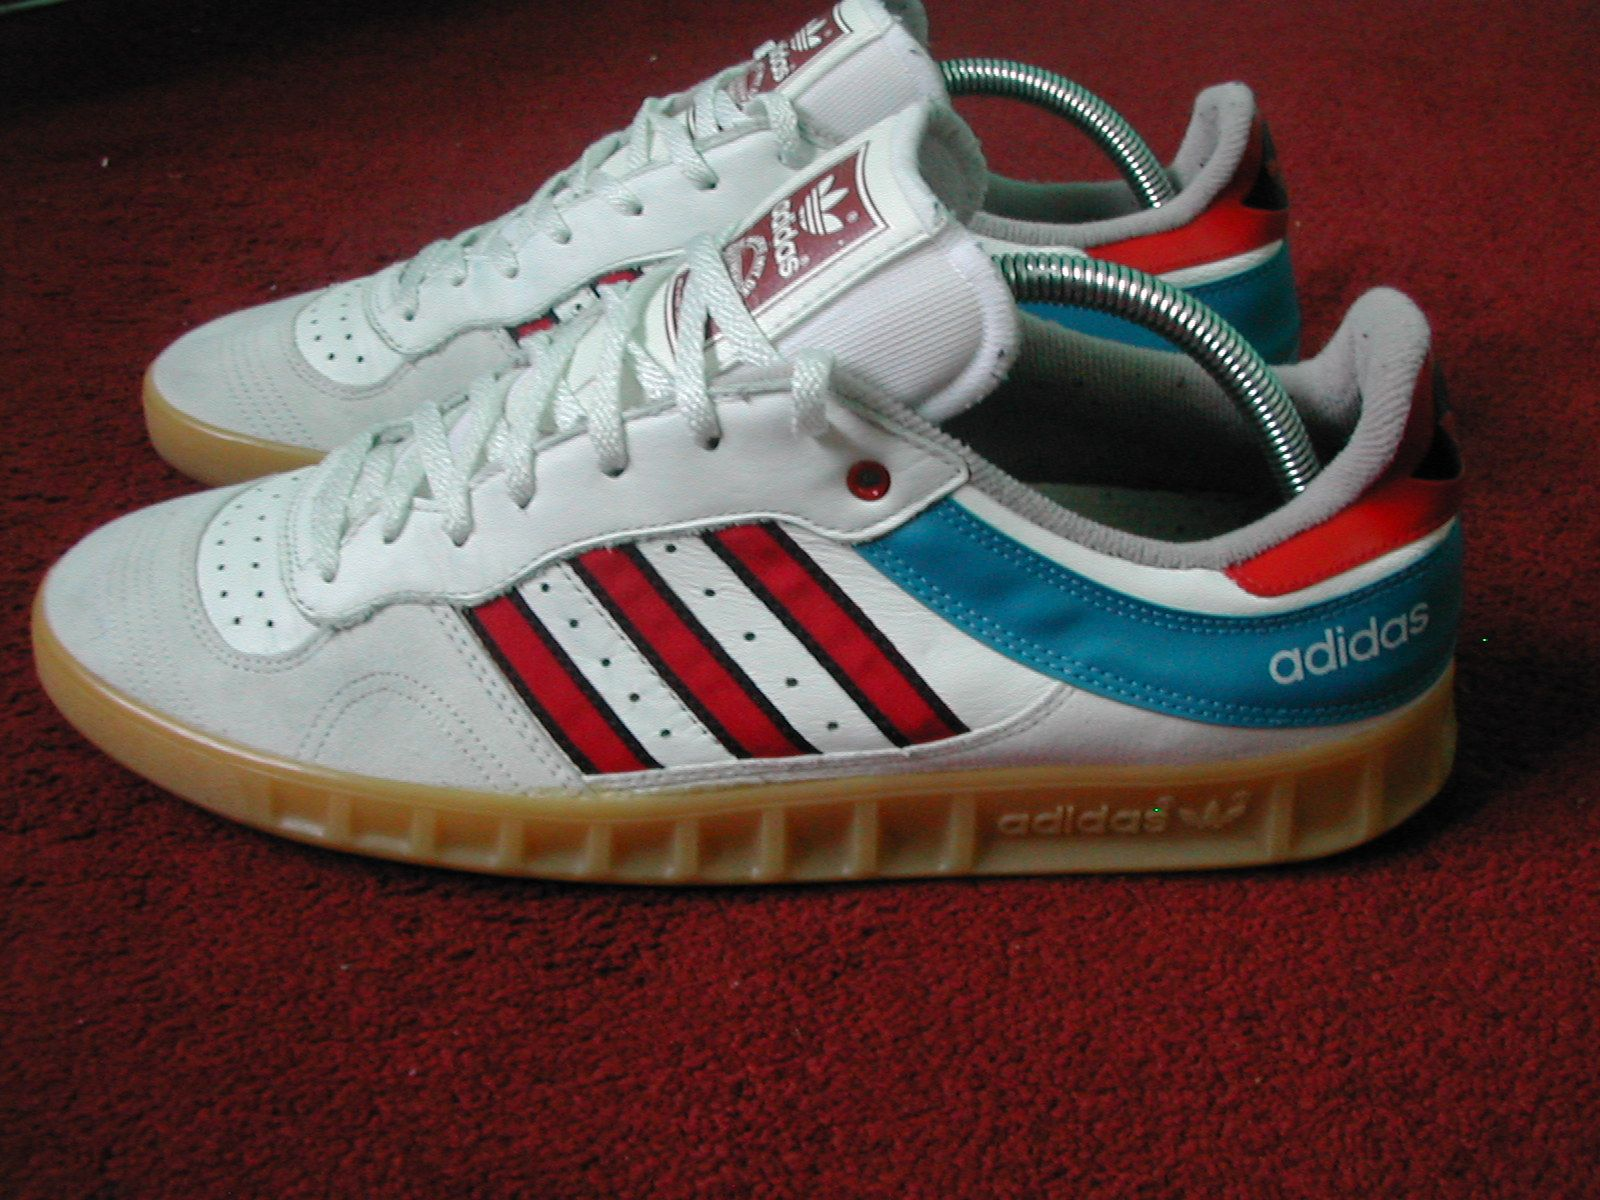 Adidas Vintage Trainers Great Sole Adidas Shoes